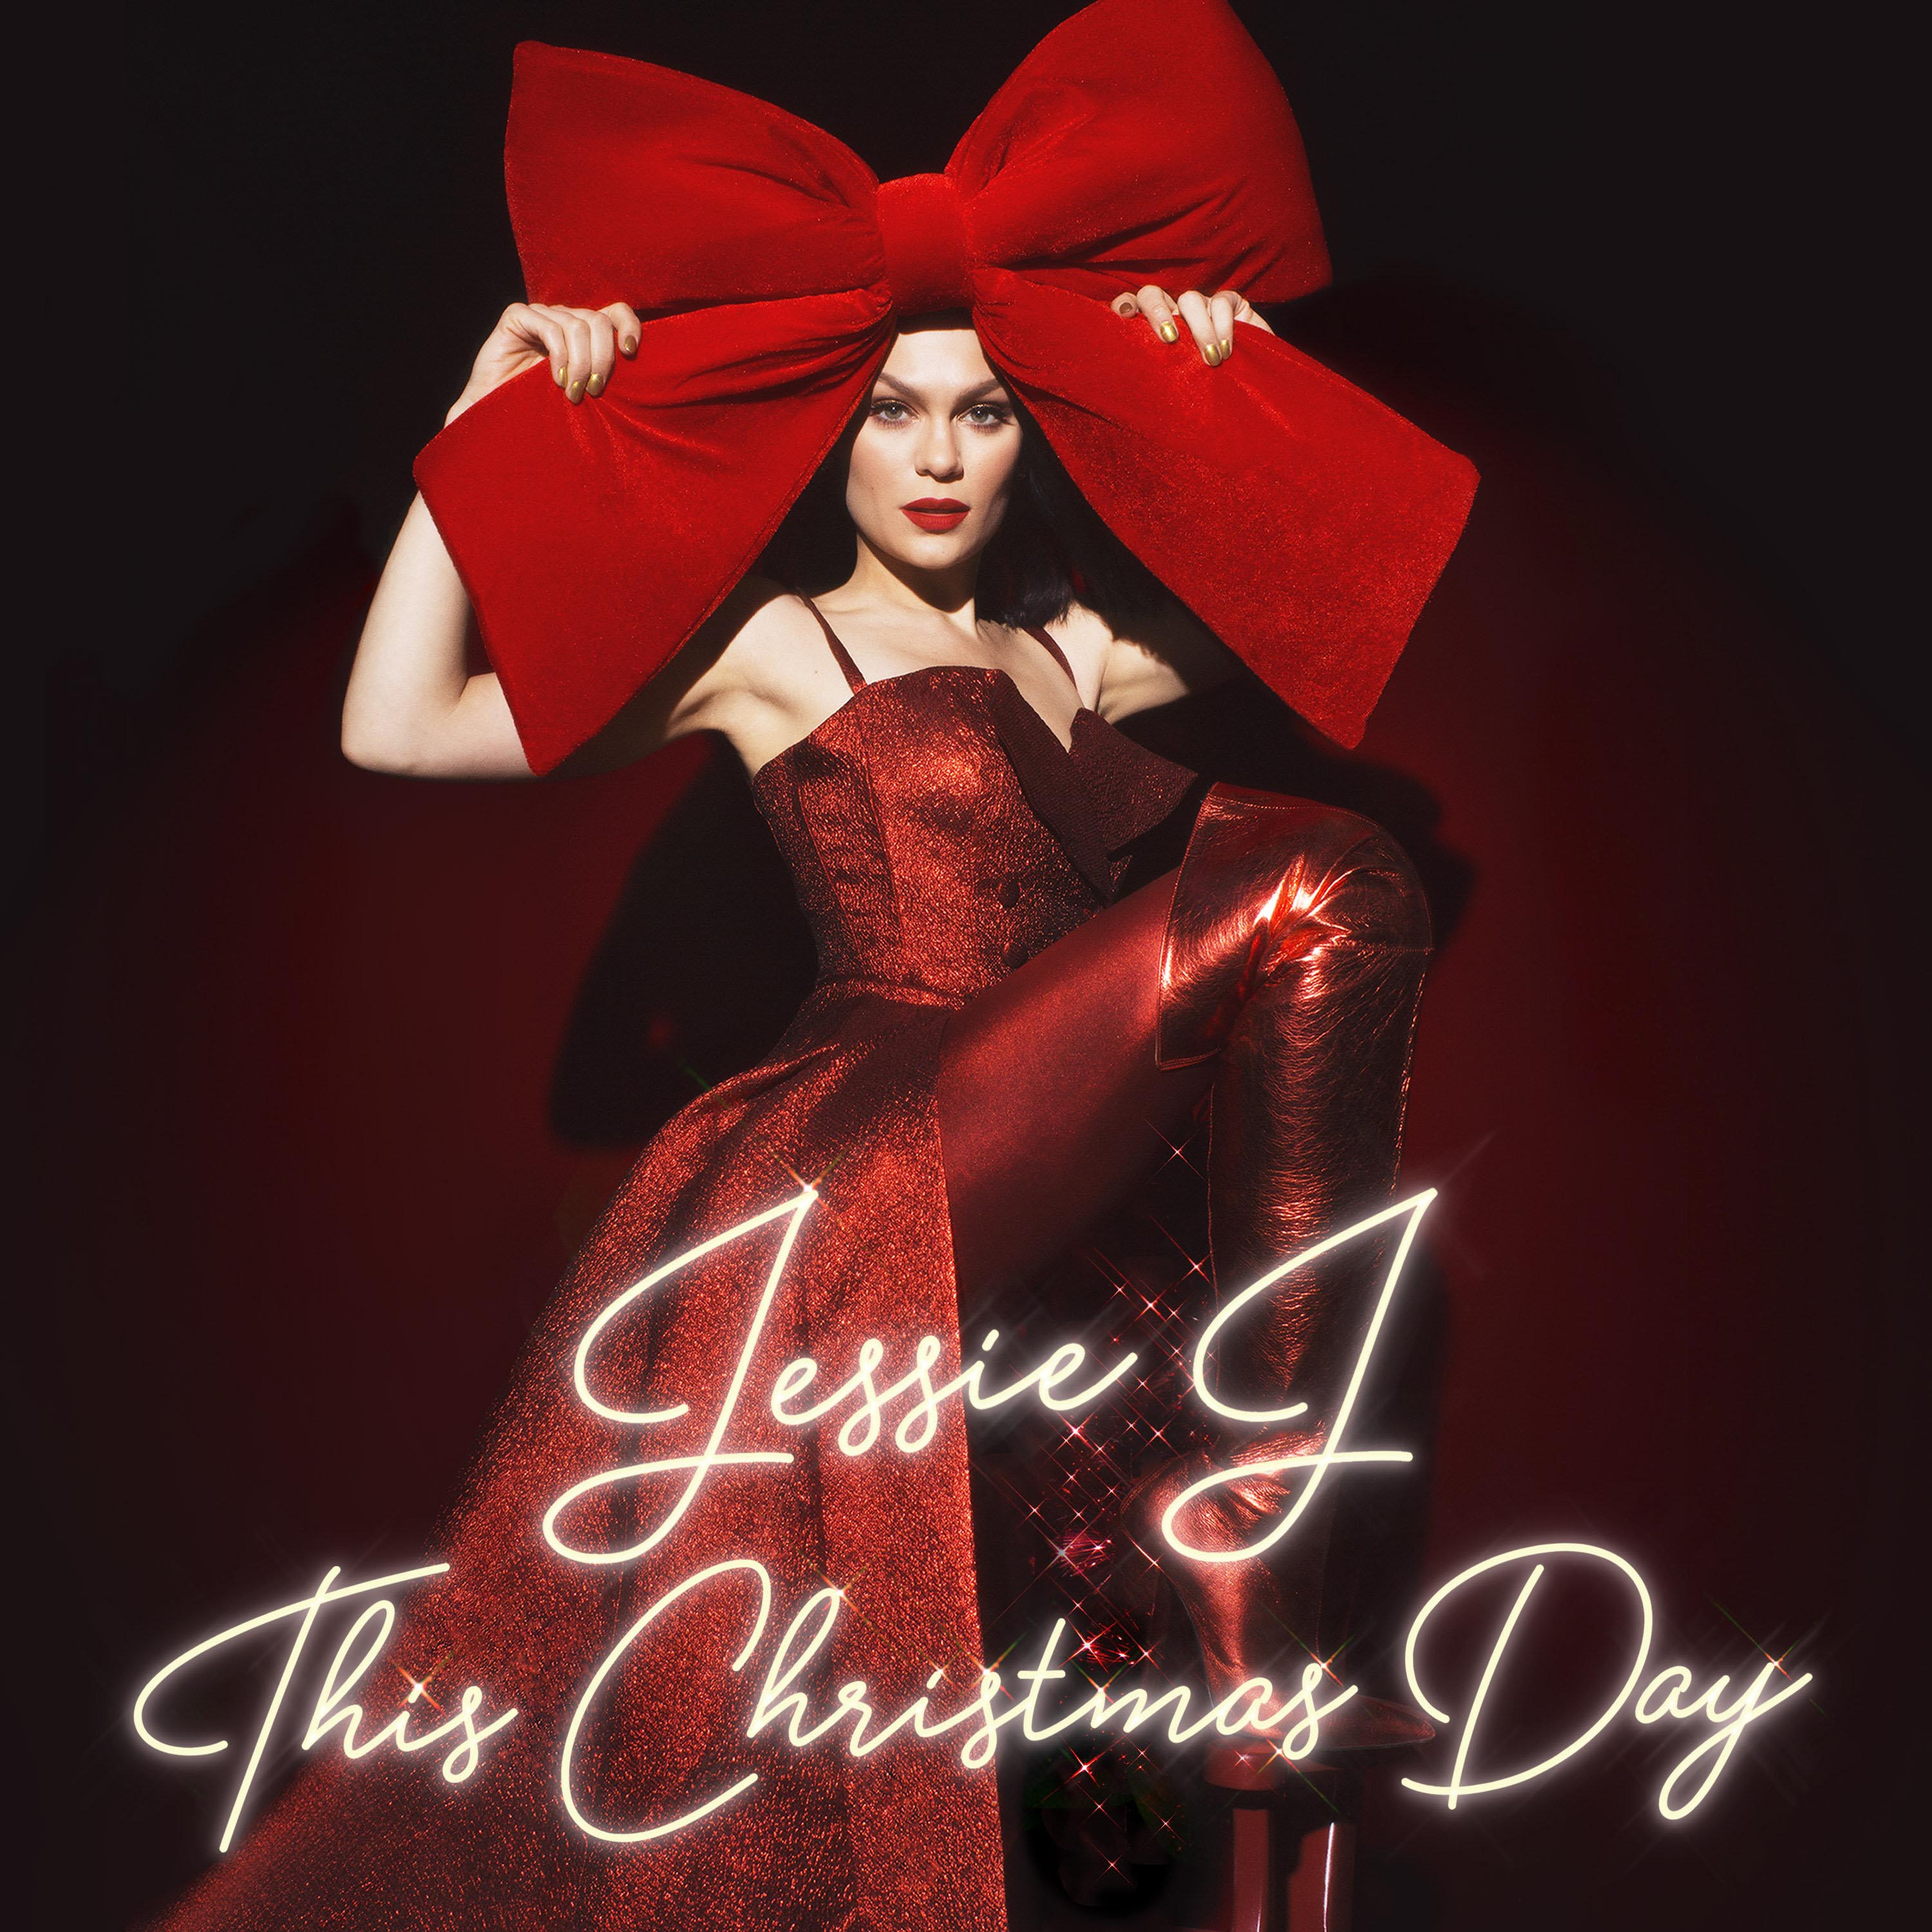 jessie-j-this-christmas-day-tgj